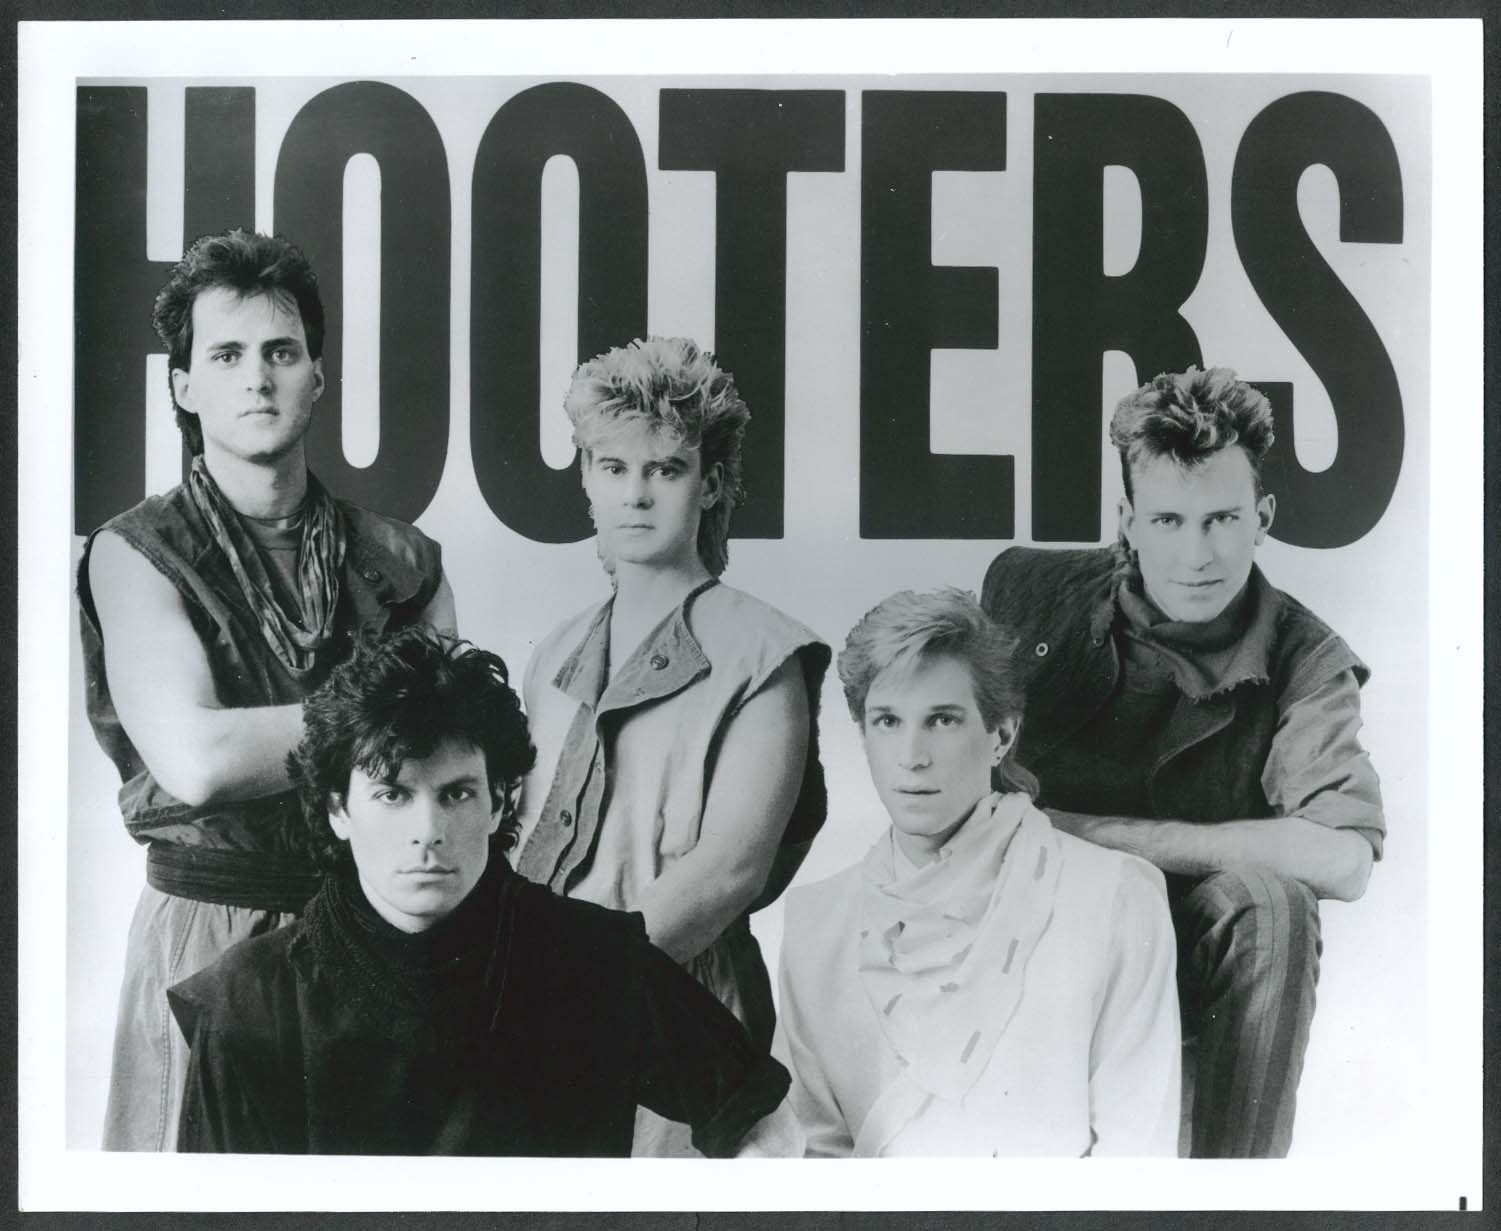 The Hooters